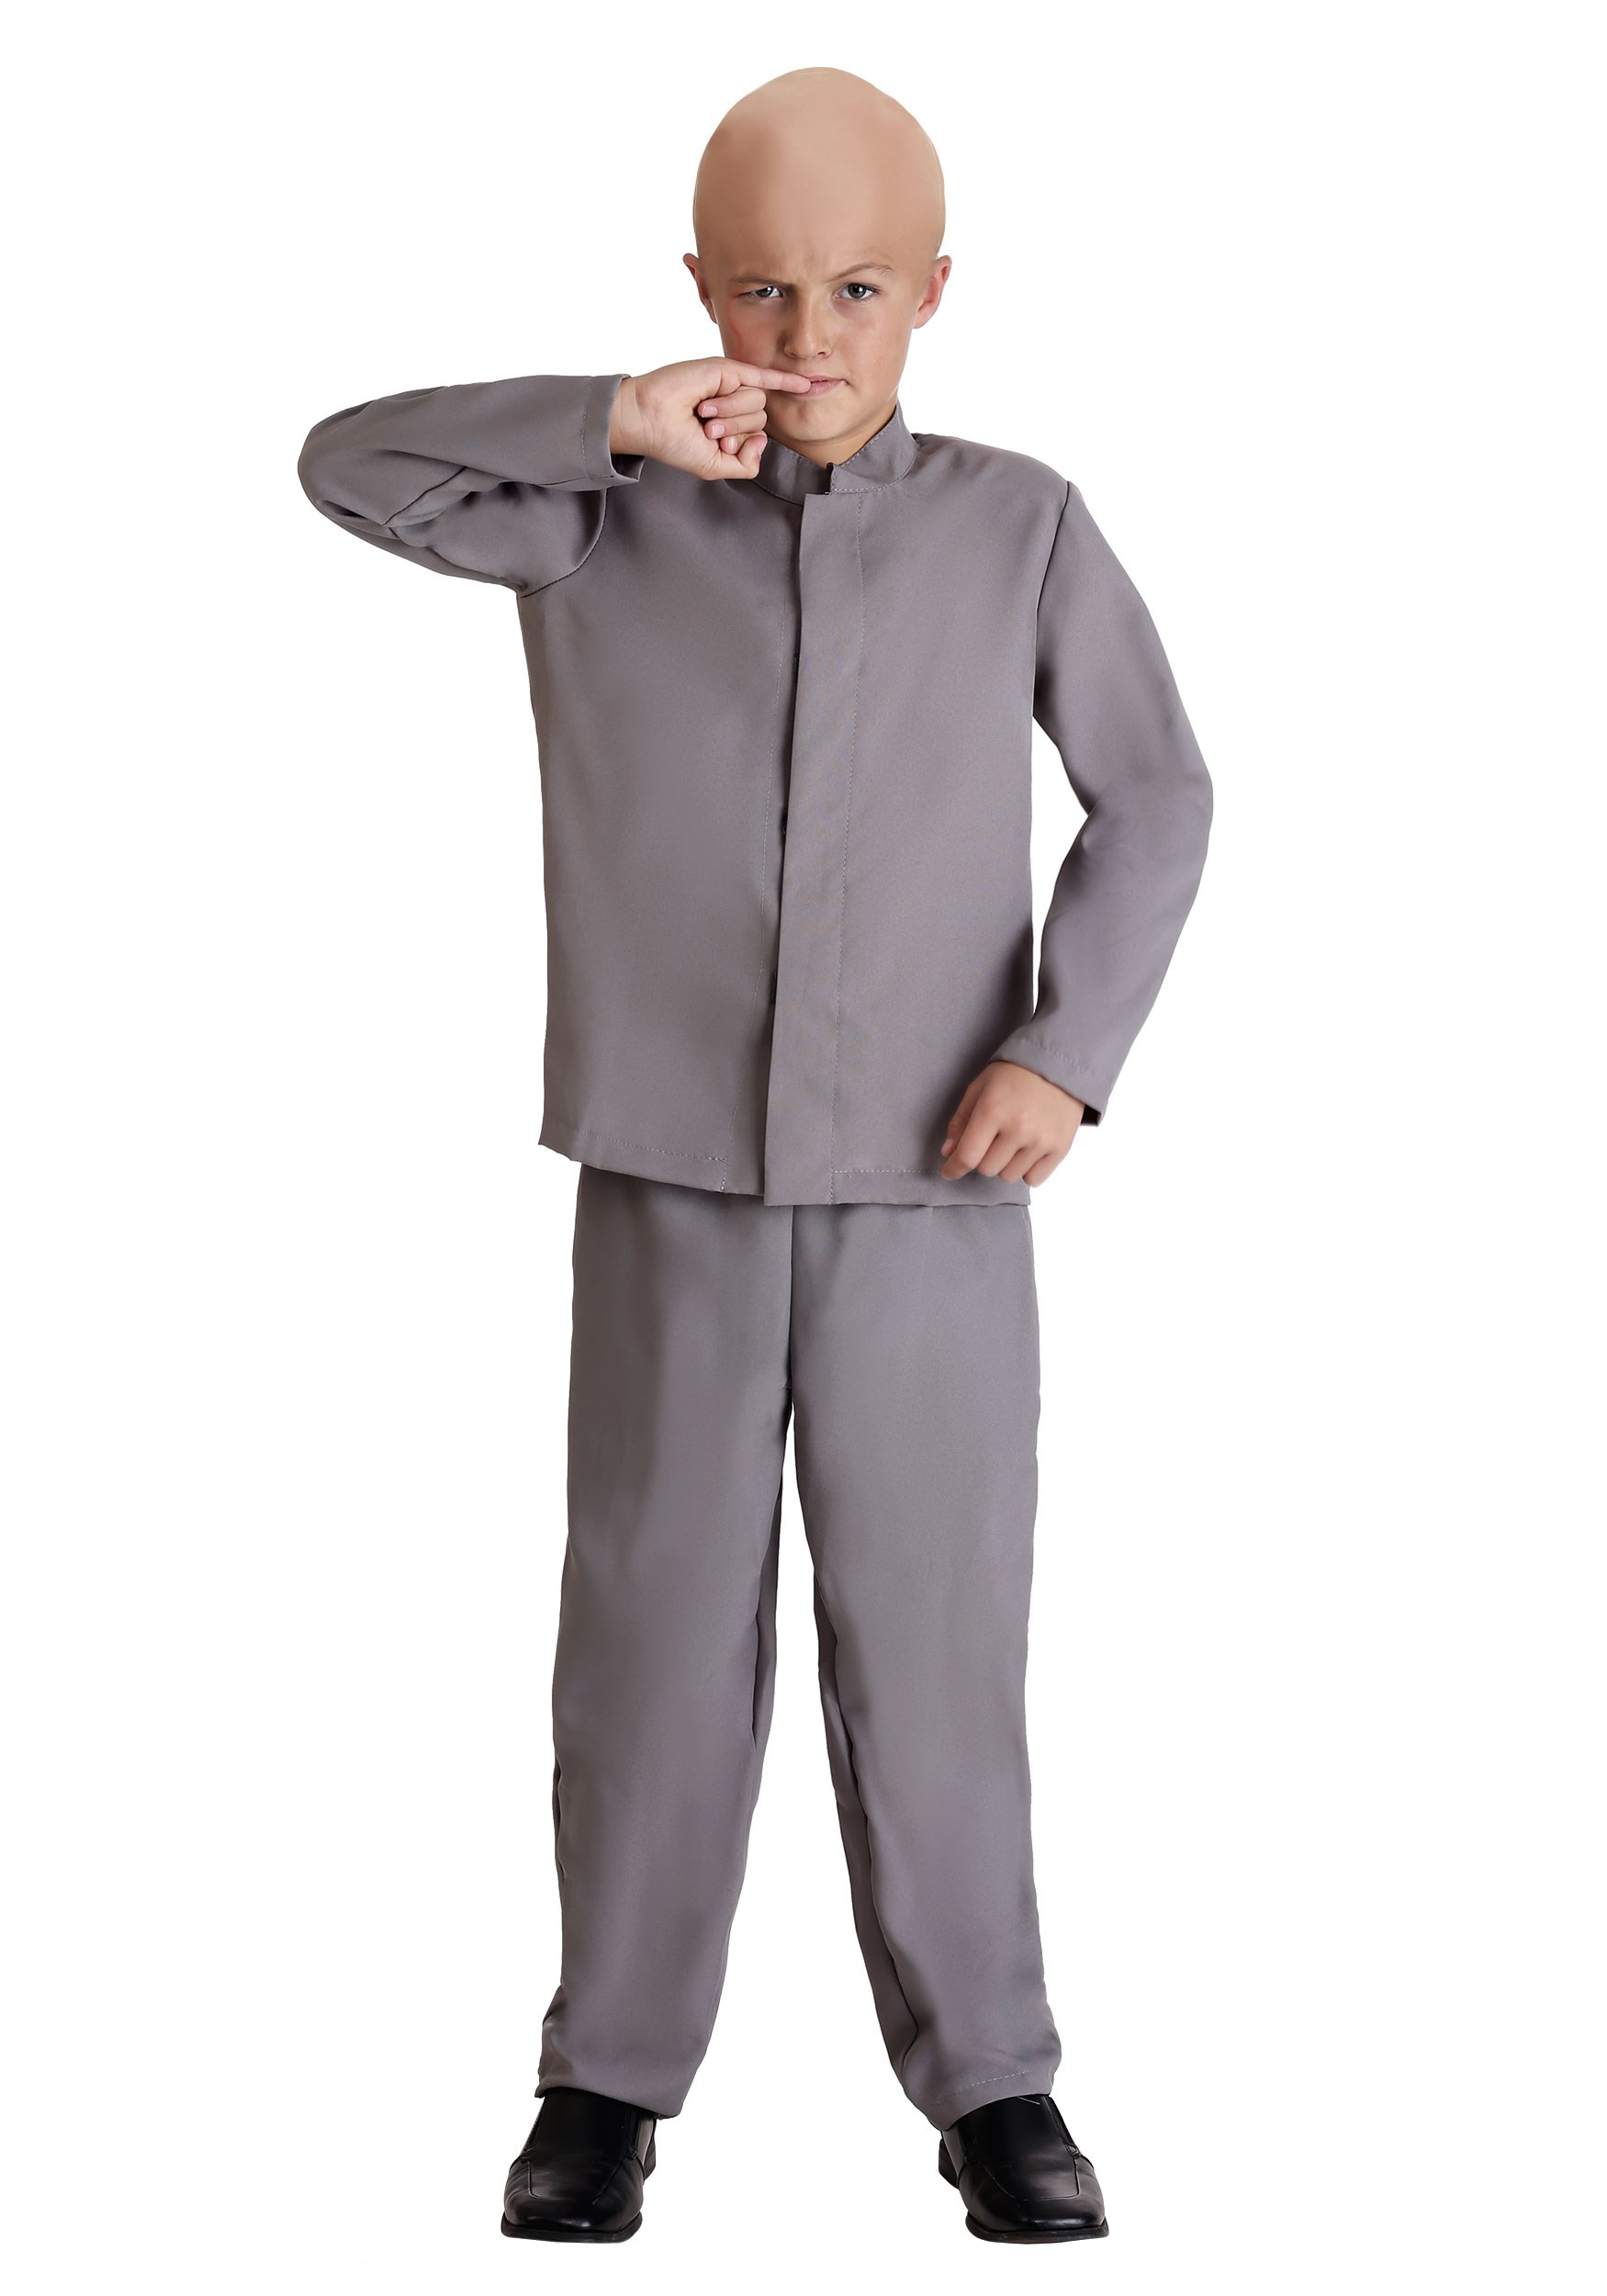 Kids Mini Grey Suit Costume